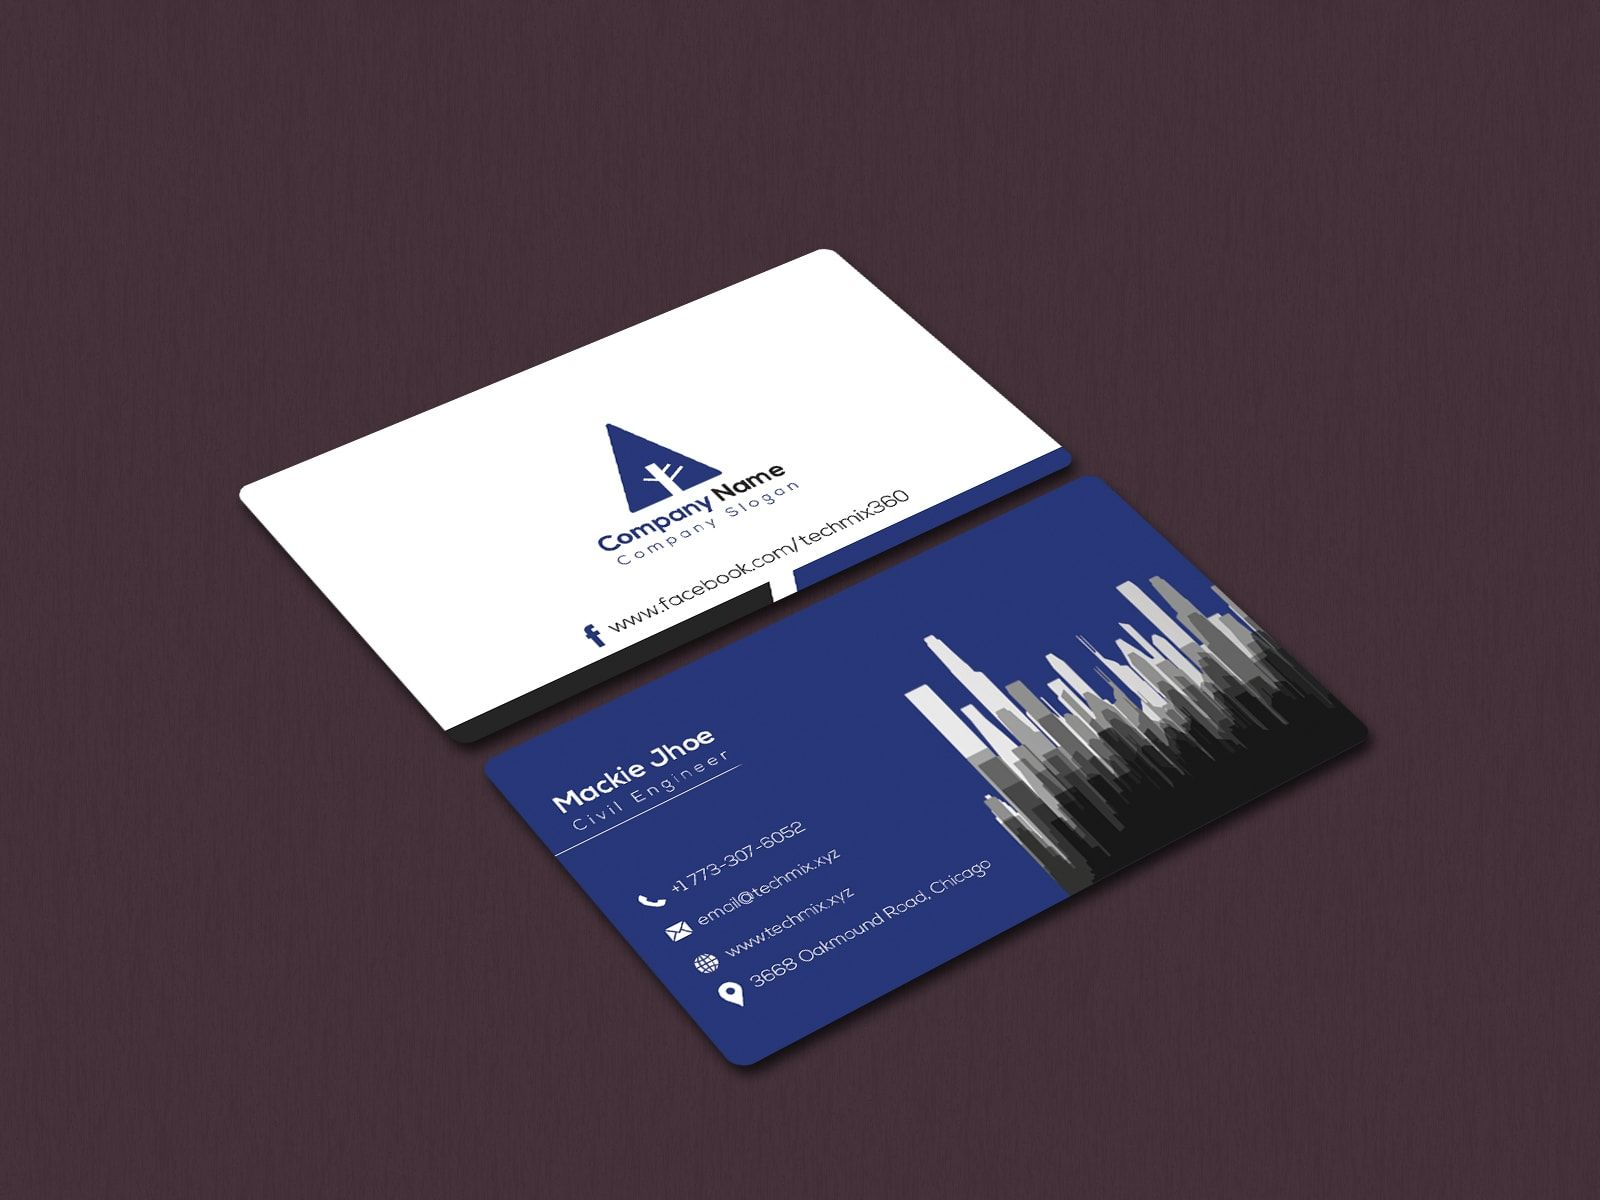 Civil Engineer Visiting Card Business Cards Creative Templates Visiting Cards Business Cards Creative